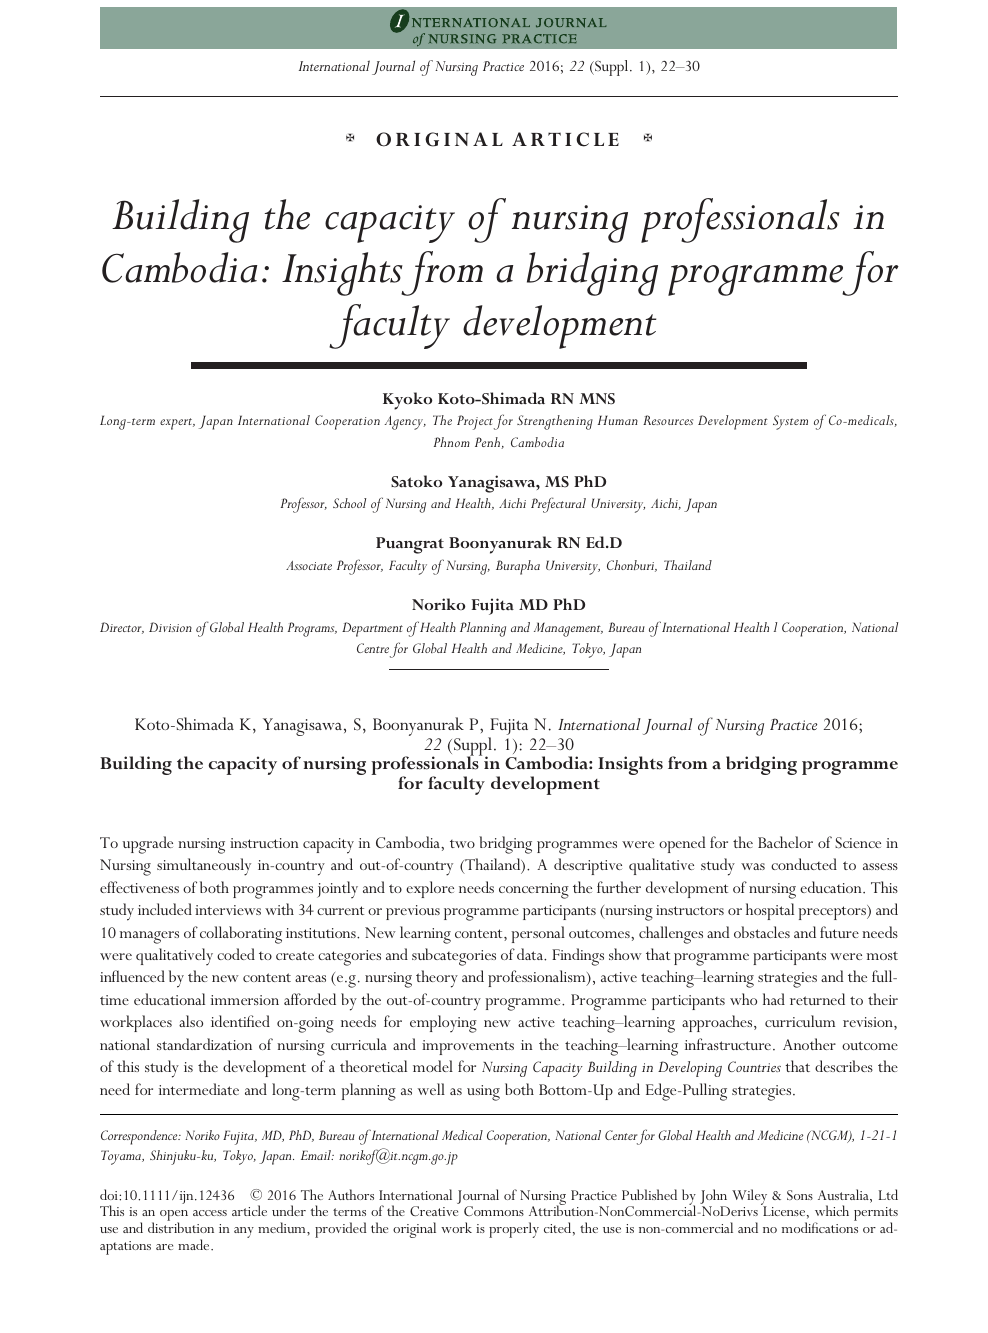 Building the capacity of nursing professionals in Cambodia